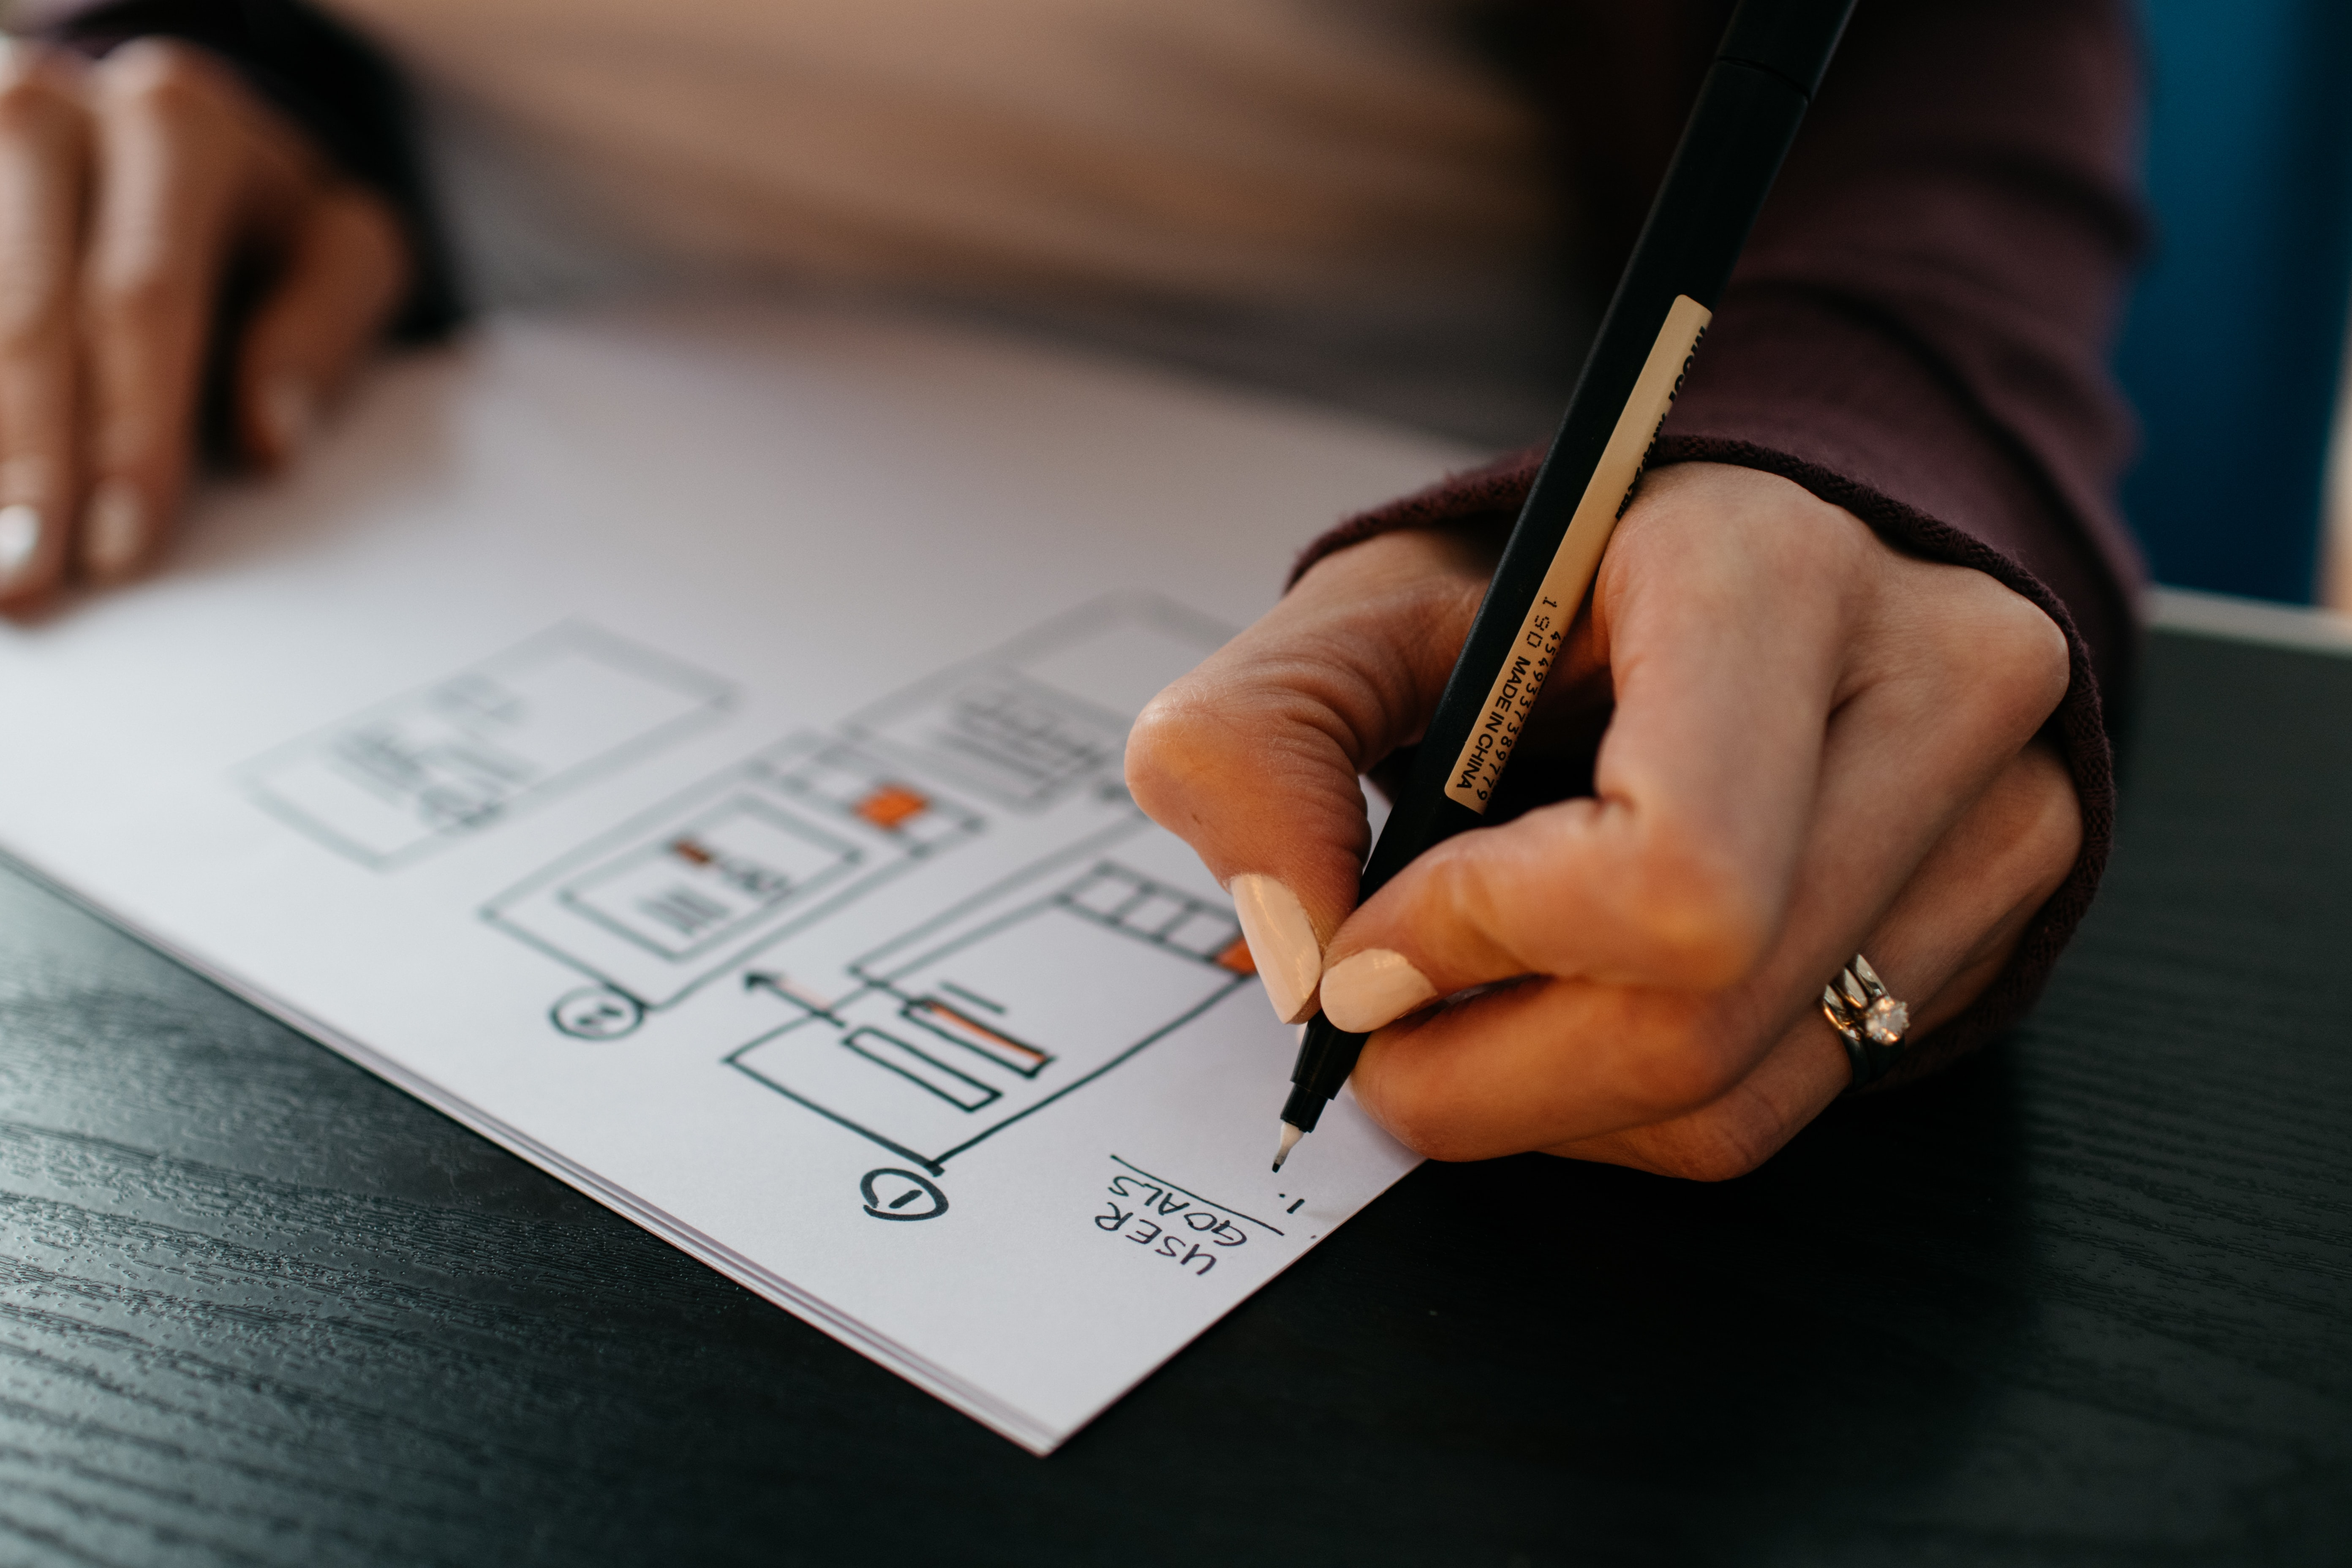 UX design is about making it as easy and efficient or enjoyable as possible.